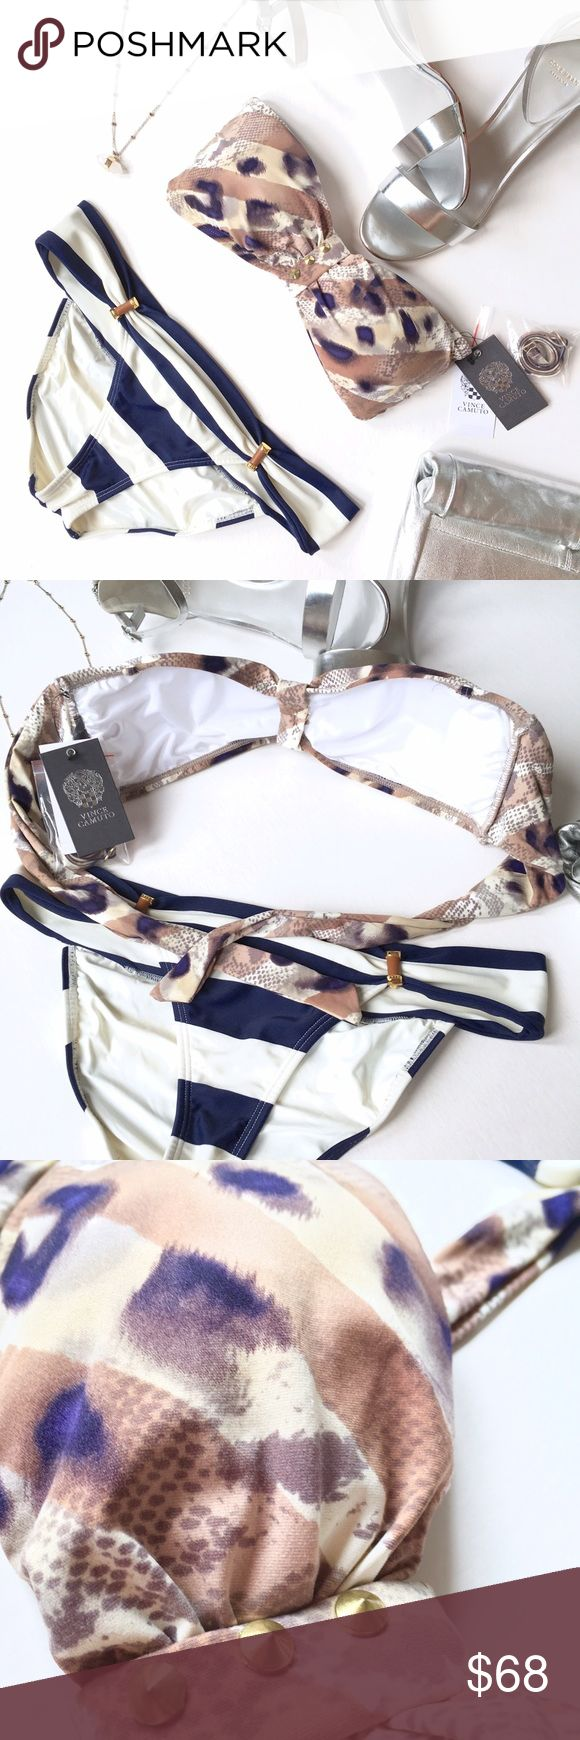 NWT Vince Camuto Mixed Print Bandeau Bikini Top Brand new with tags! Vince Camuto bandeau bikini top in a beautiful and unique mixed stripe and animal print. The various colors within the print allow for a multitude of pairing options--brown, white, grey, navy, etc. This post is for the bikini top only. The top does come with a detachable and adjustable strap, as seen in the first image. Also comes with removable padding inserts. Make me an offer! Vince Camuto Swim Bikinis